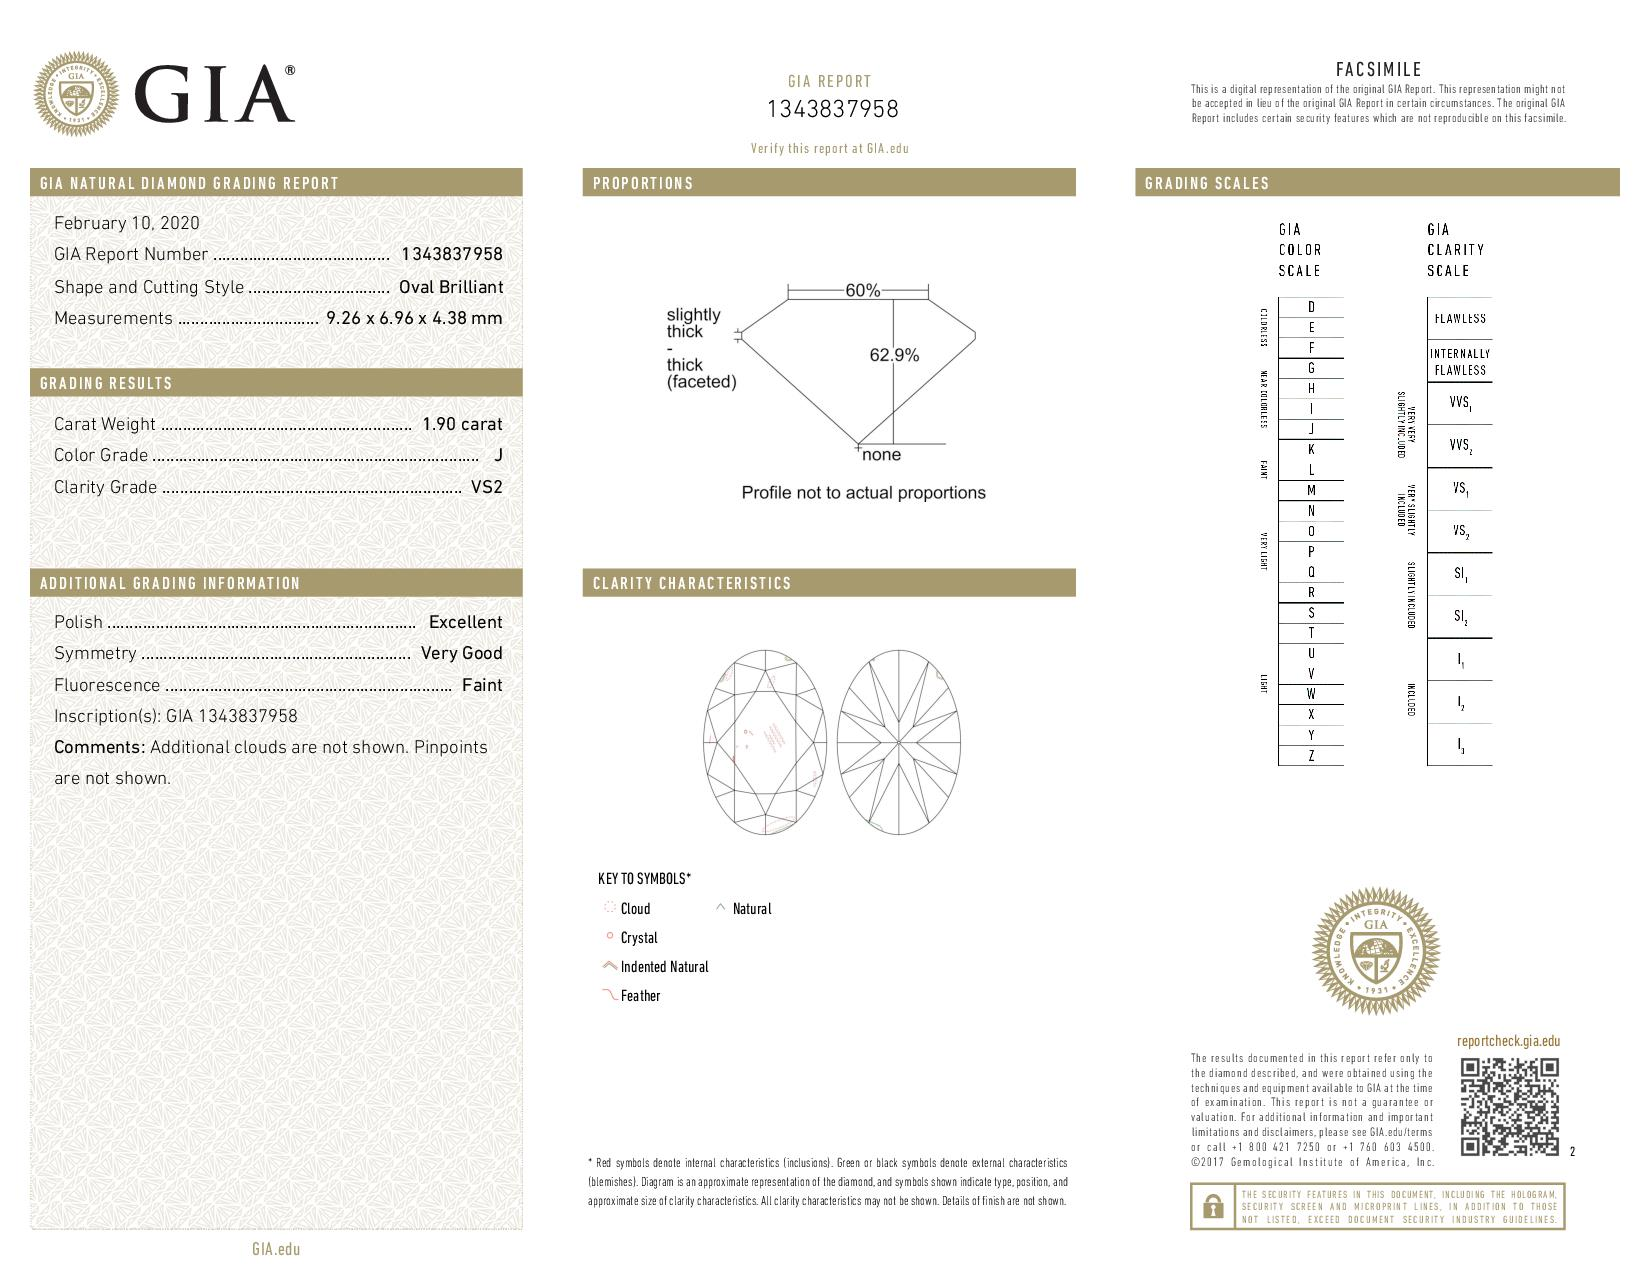 This is a 1.90 carat oval shape, J color, VS2 clarity natural diamond accompanied by a GIA grading report.